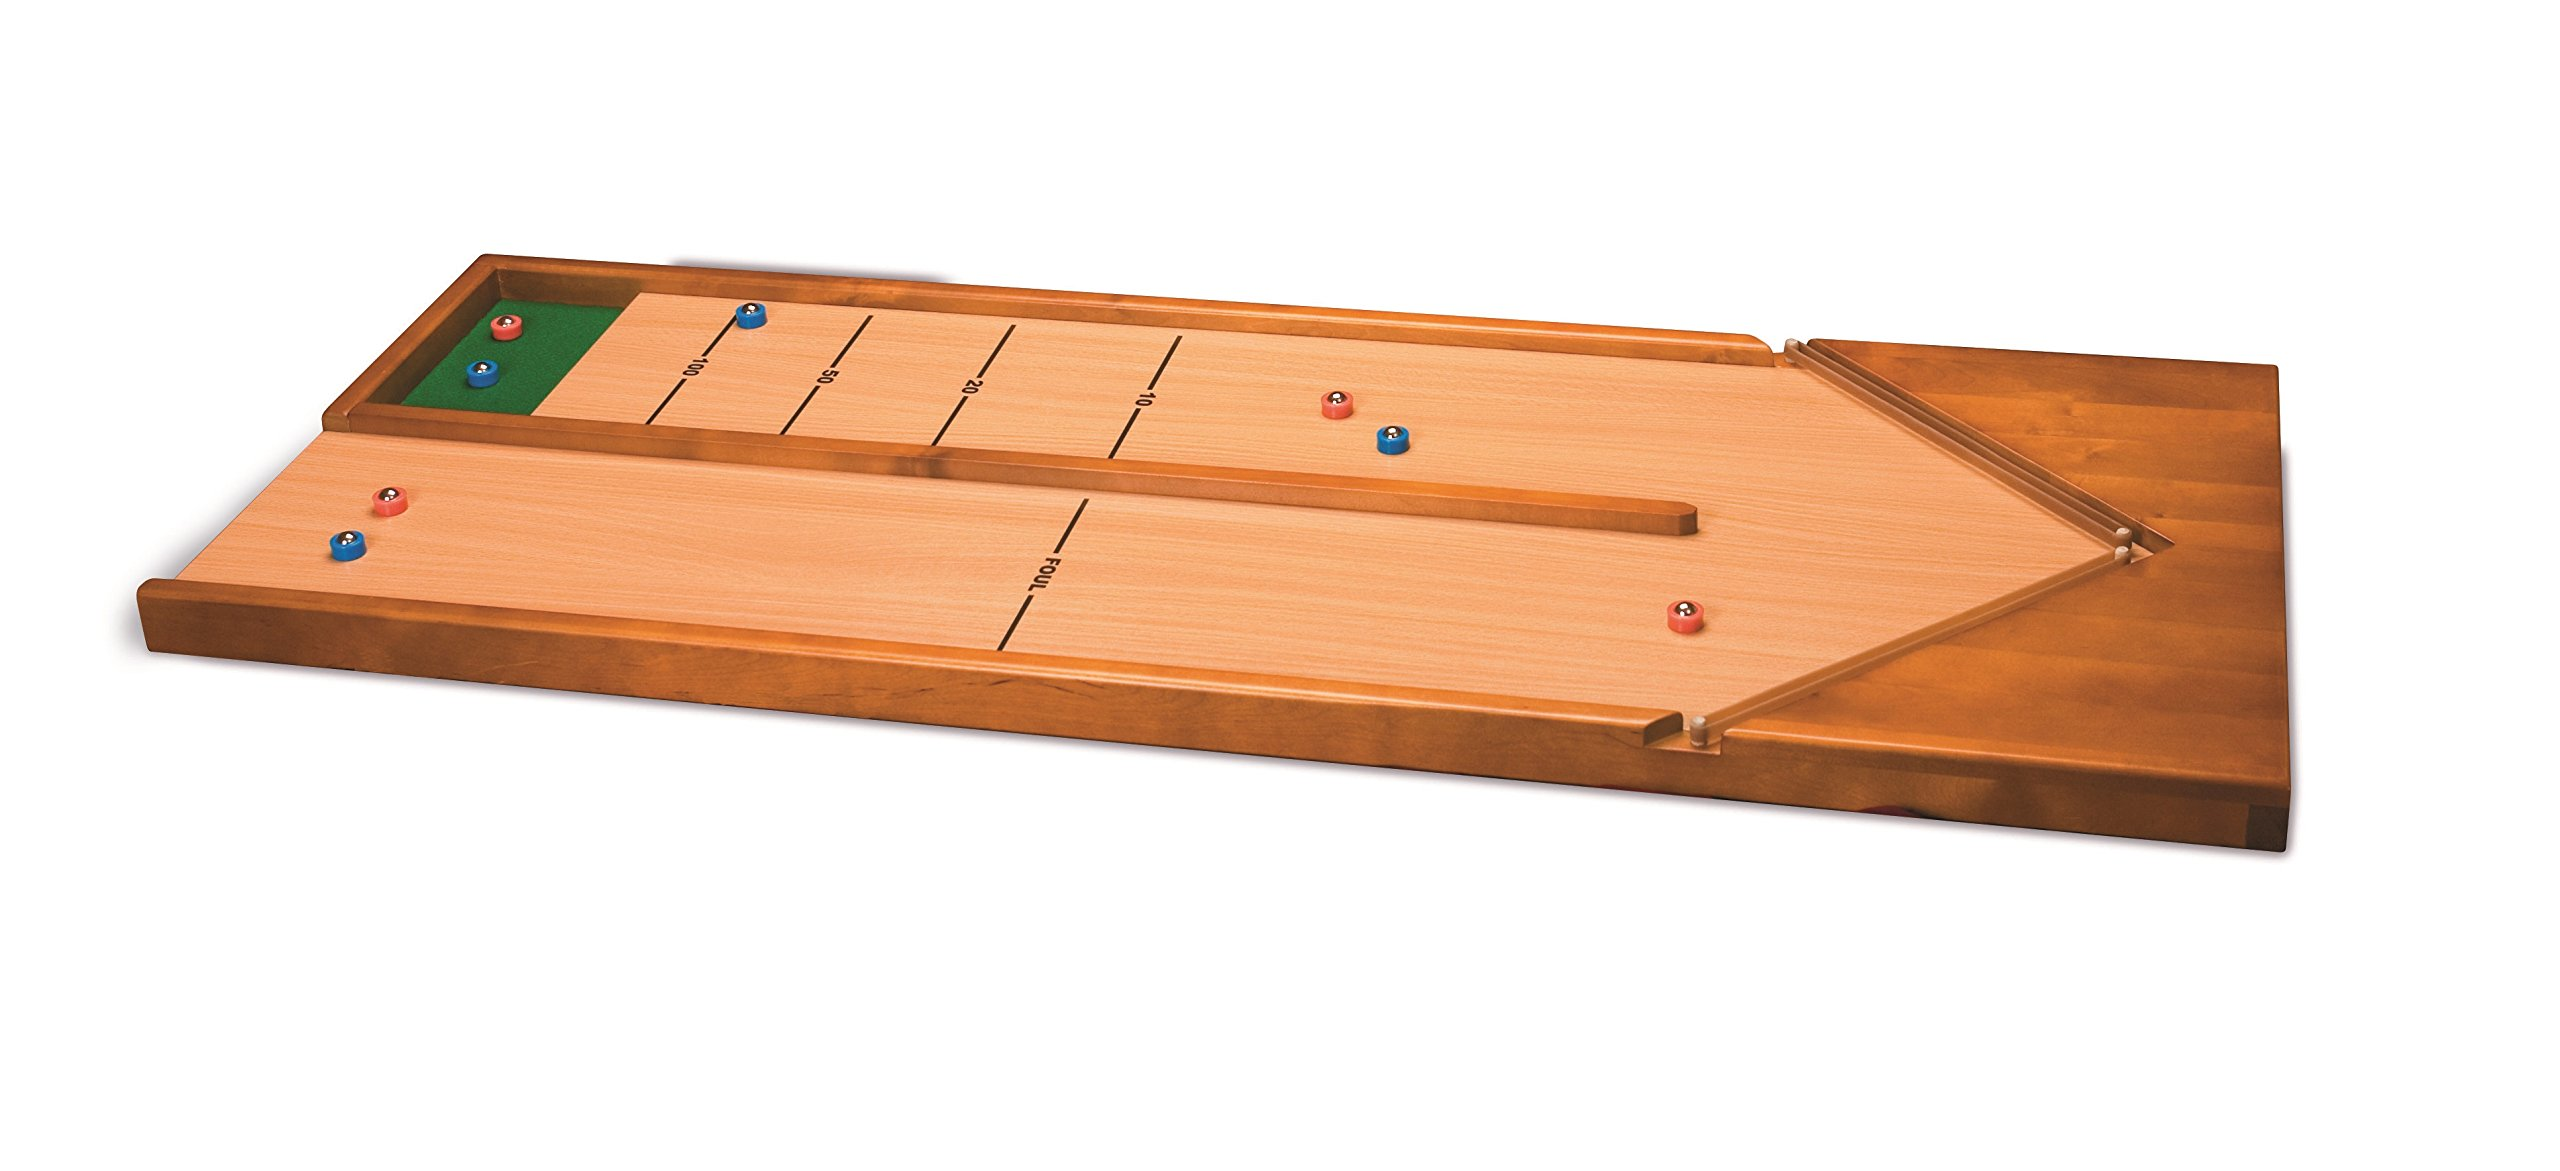 New Entertainment Table Top Shuffleboard